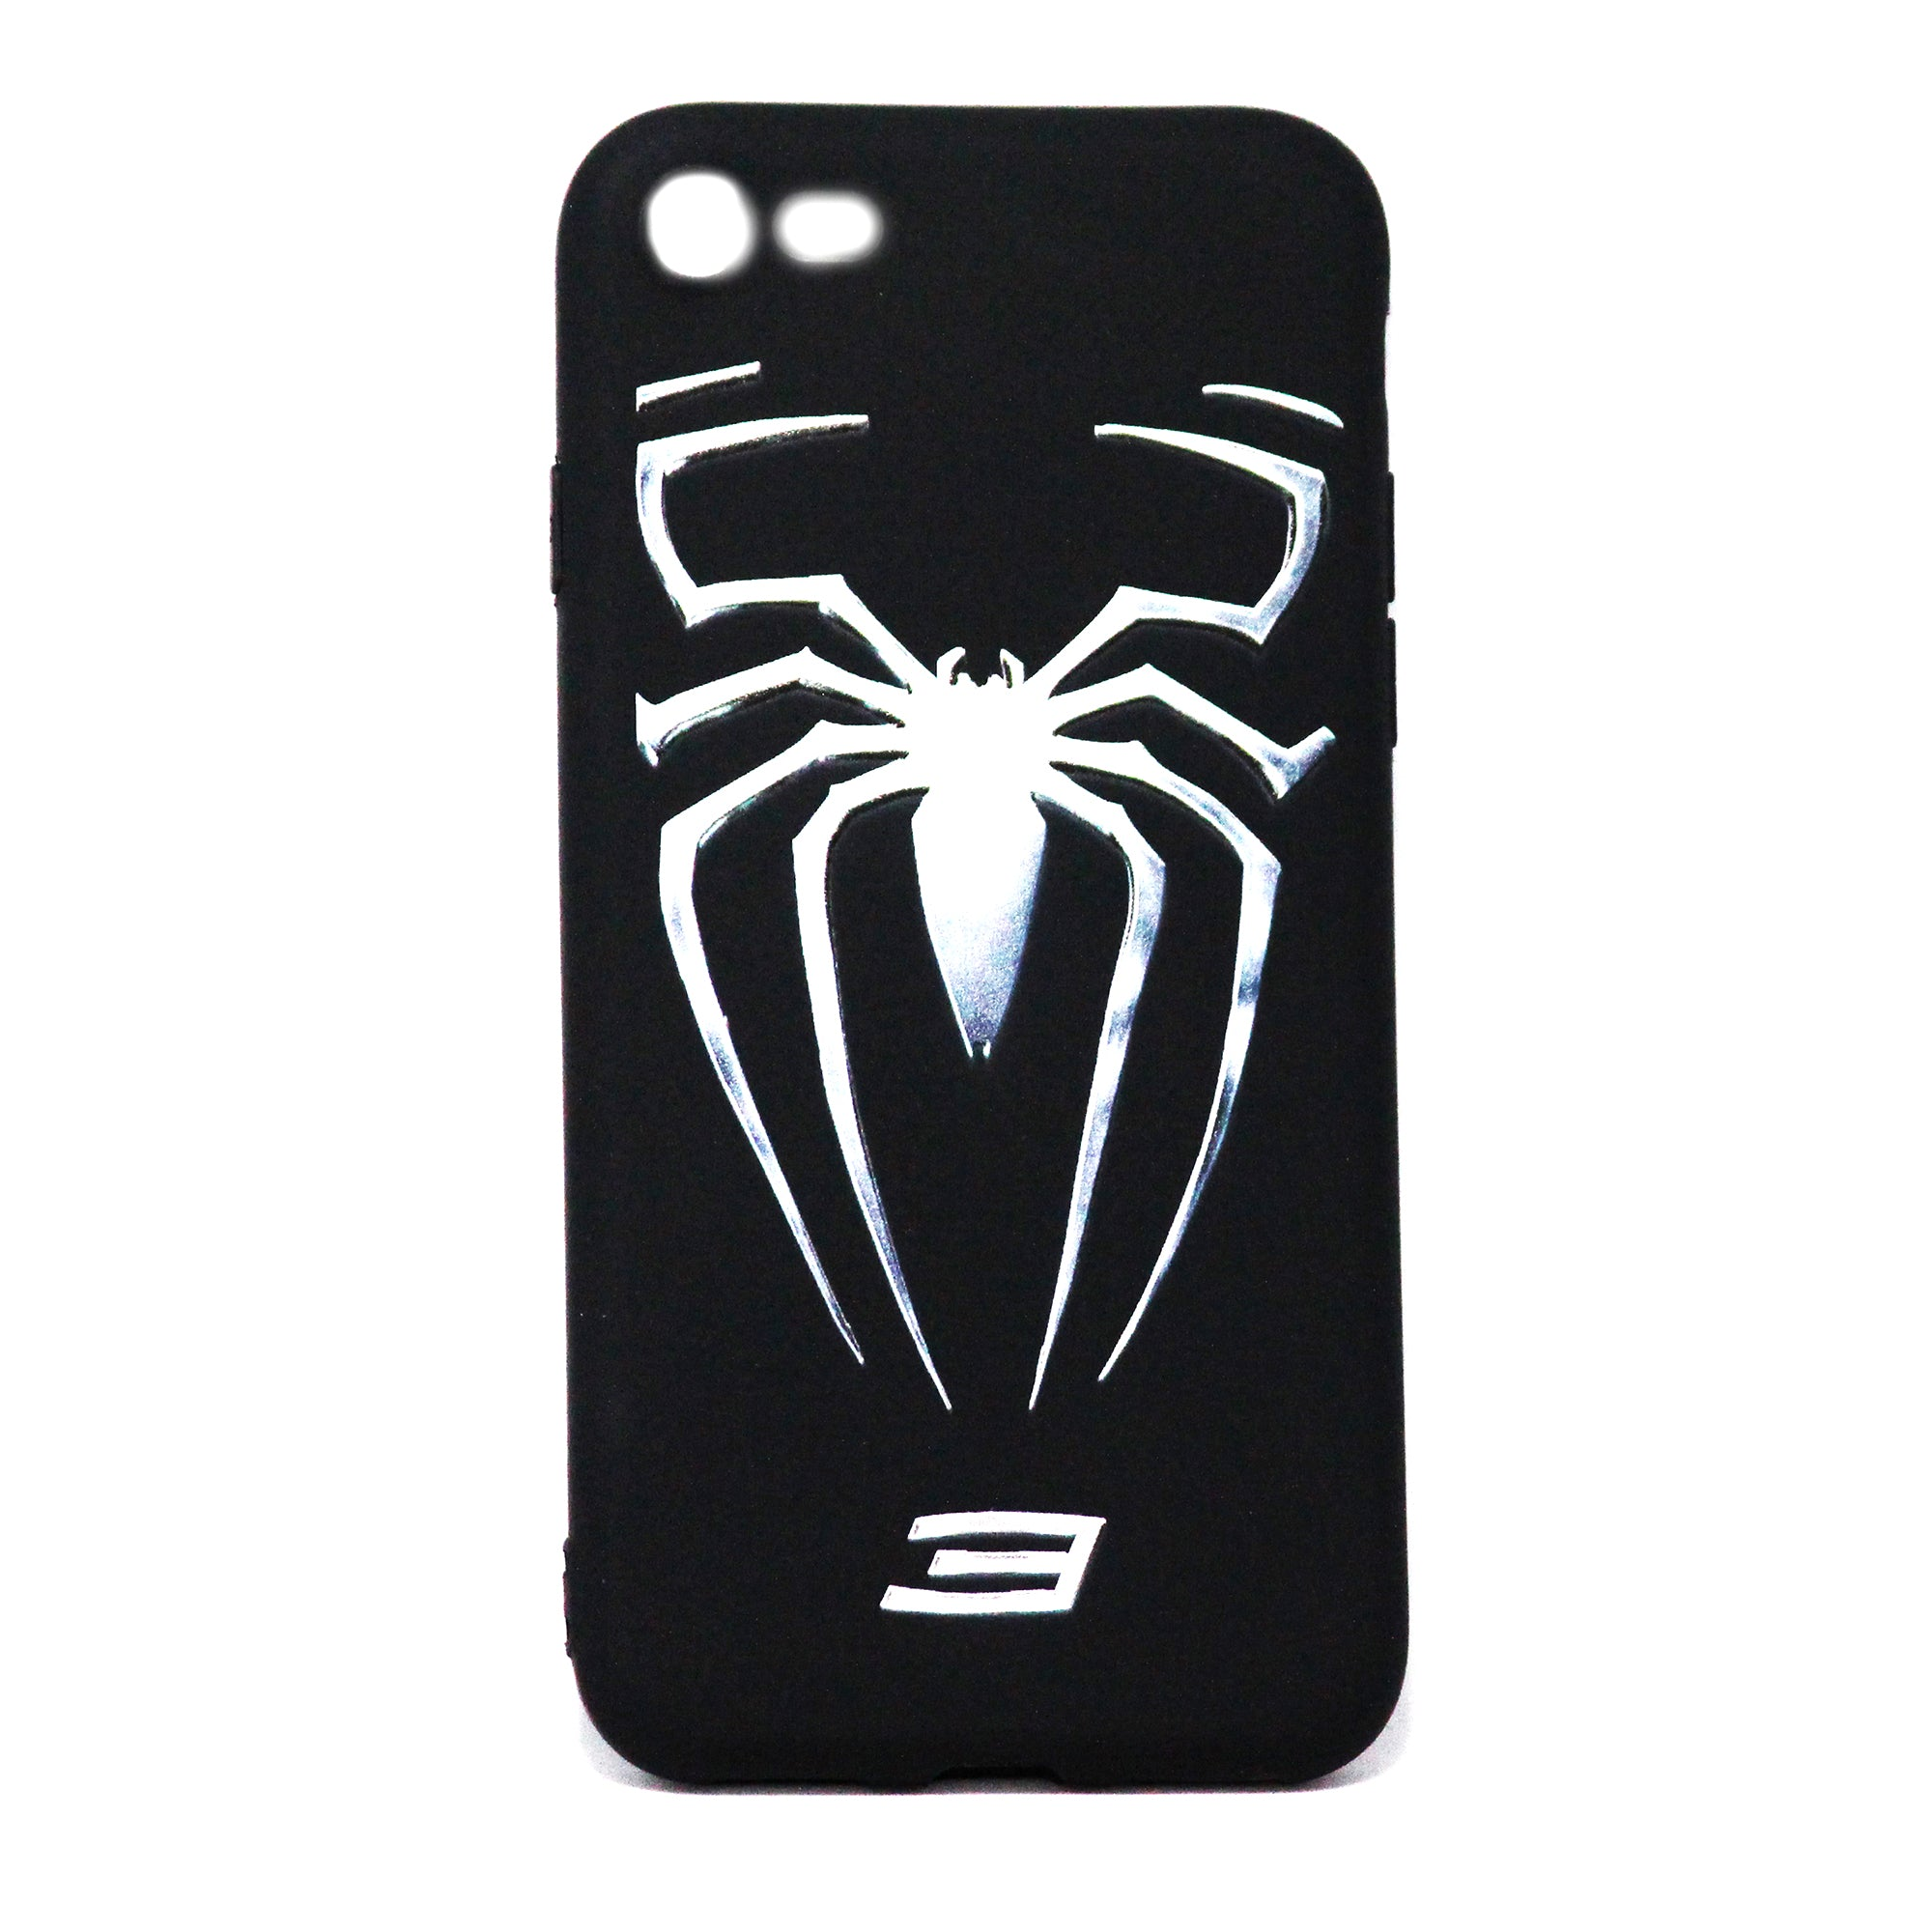 Spider Case (iPhone 7)